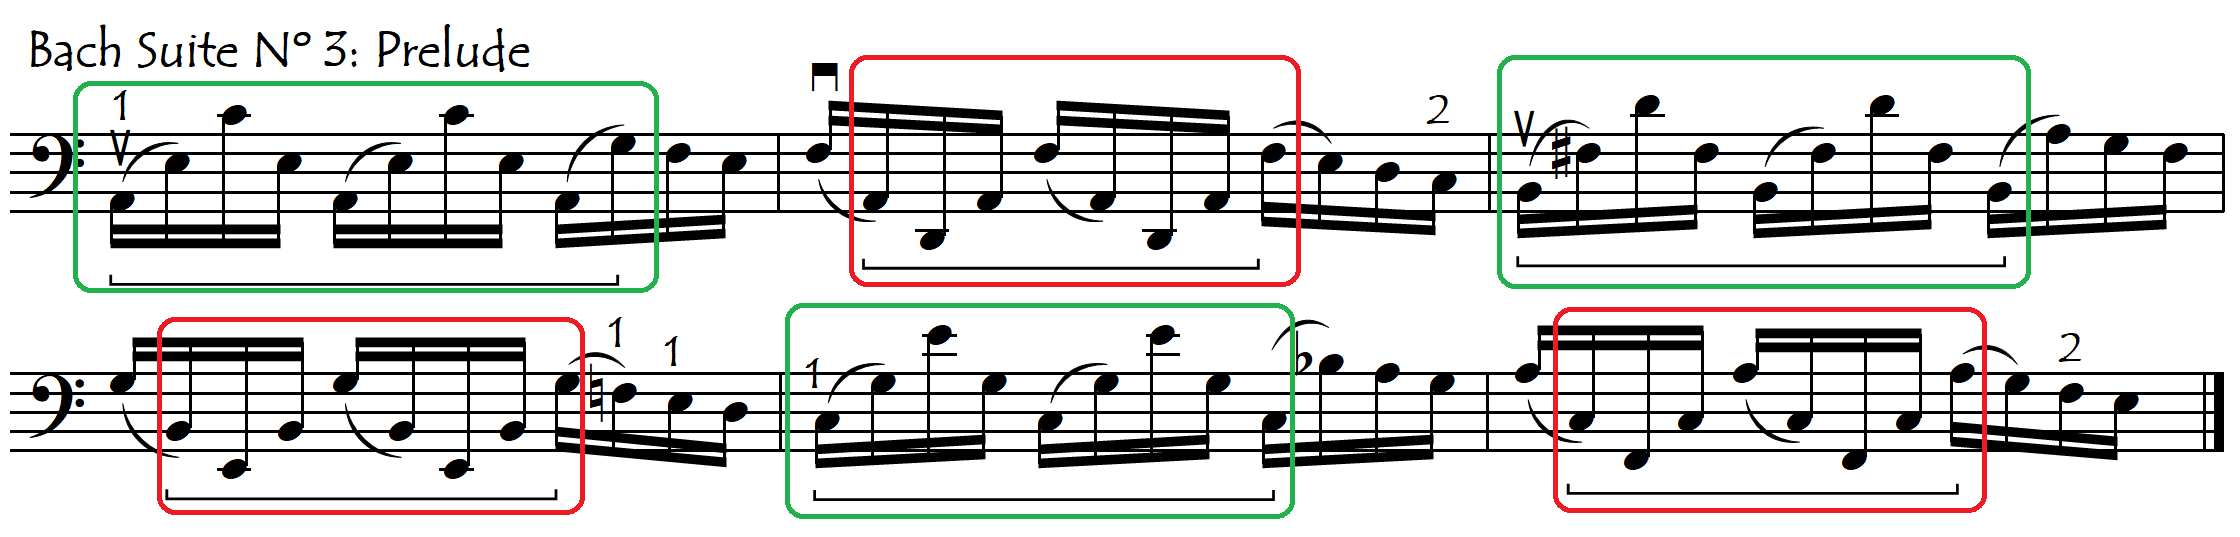 1st finger capo fifths both directions Bach PIII PAINT